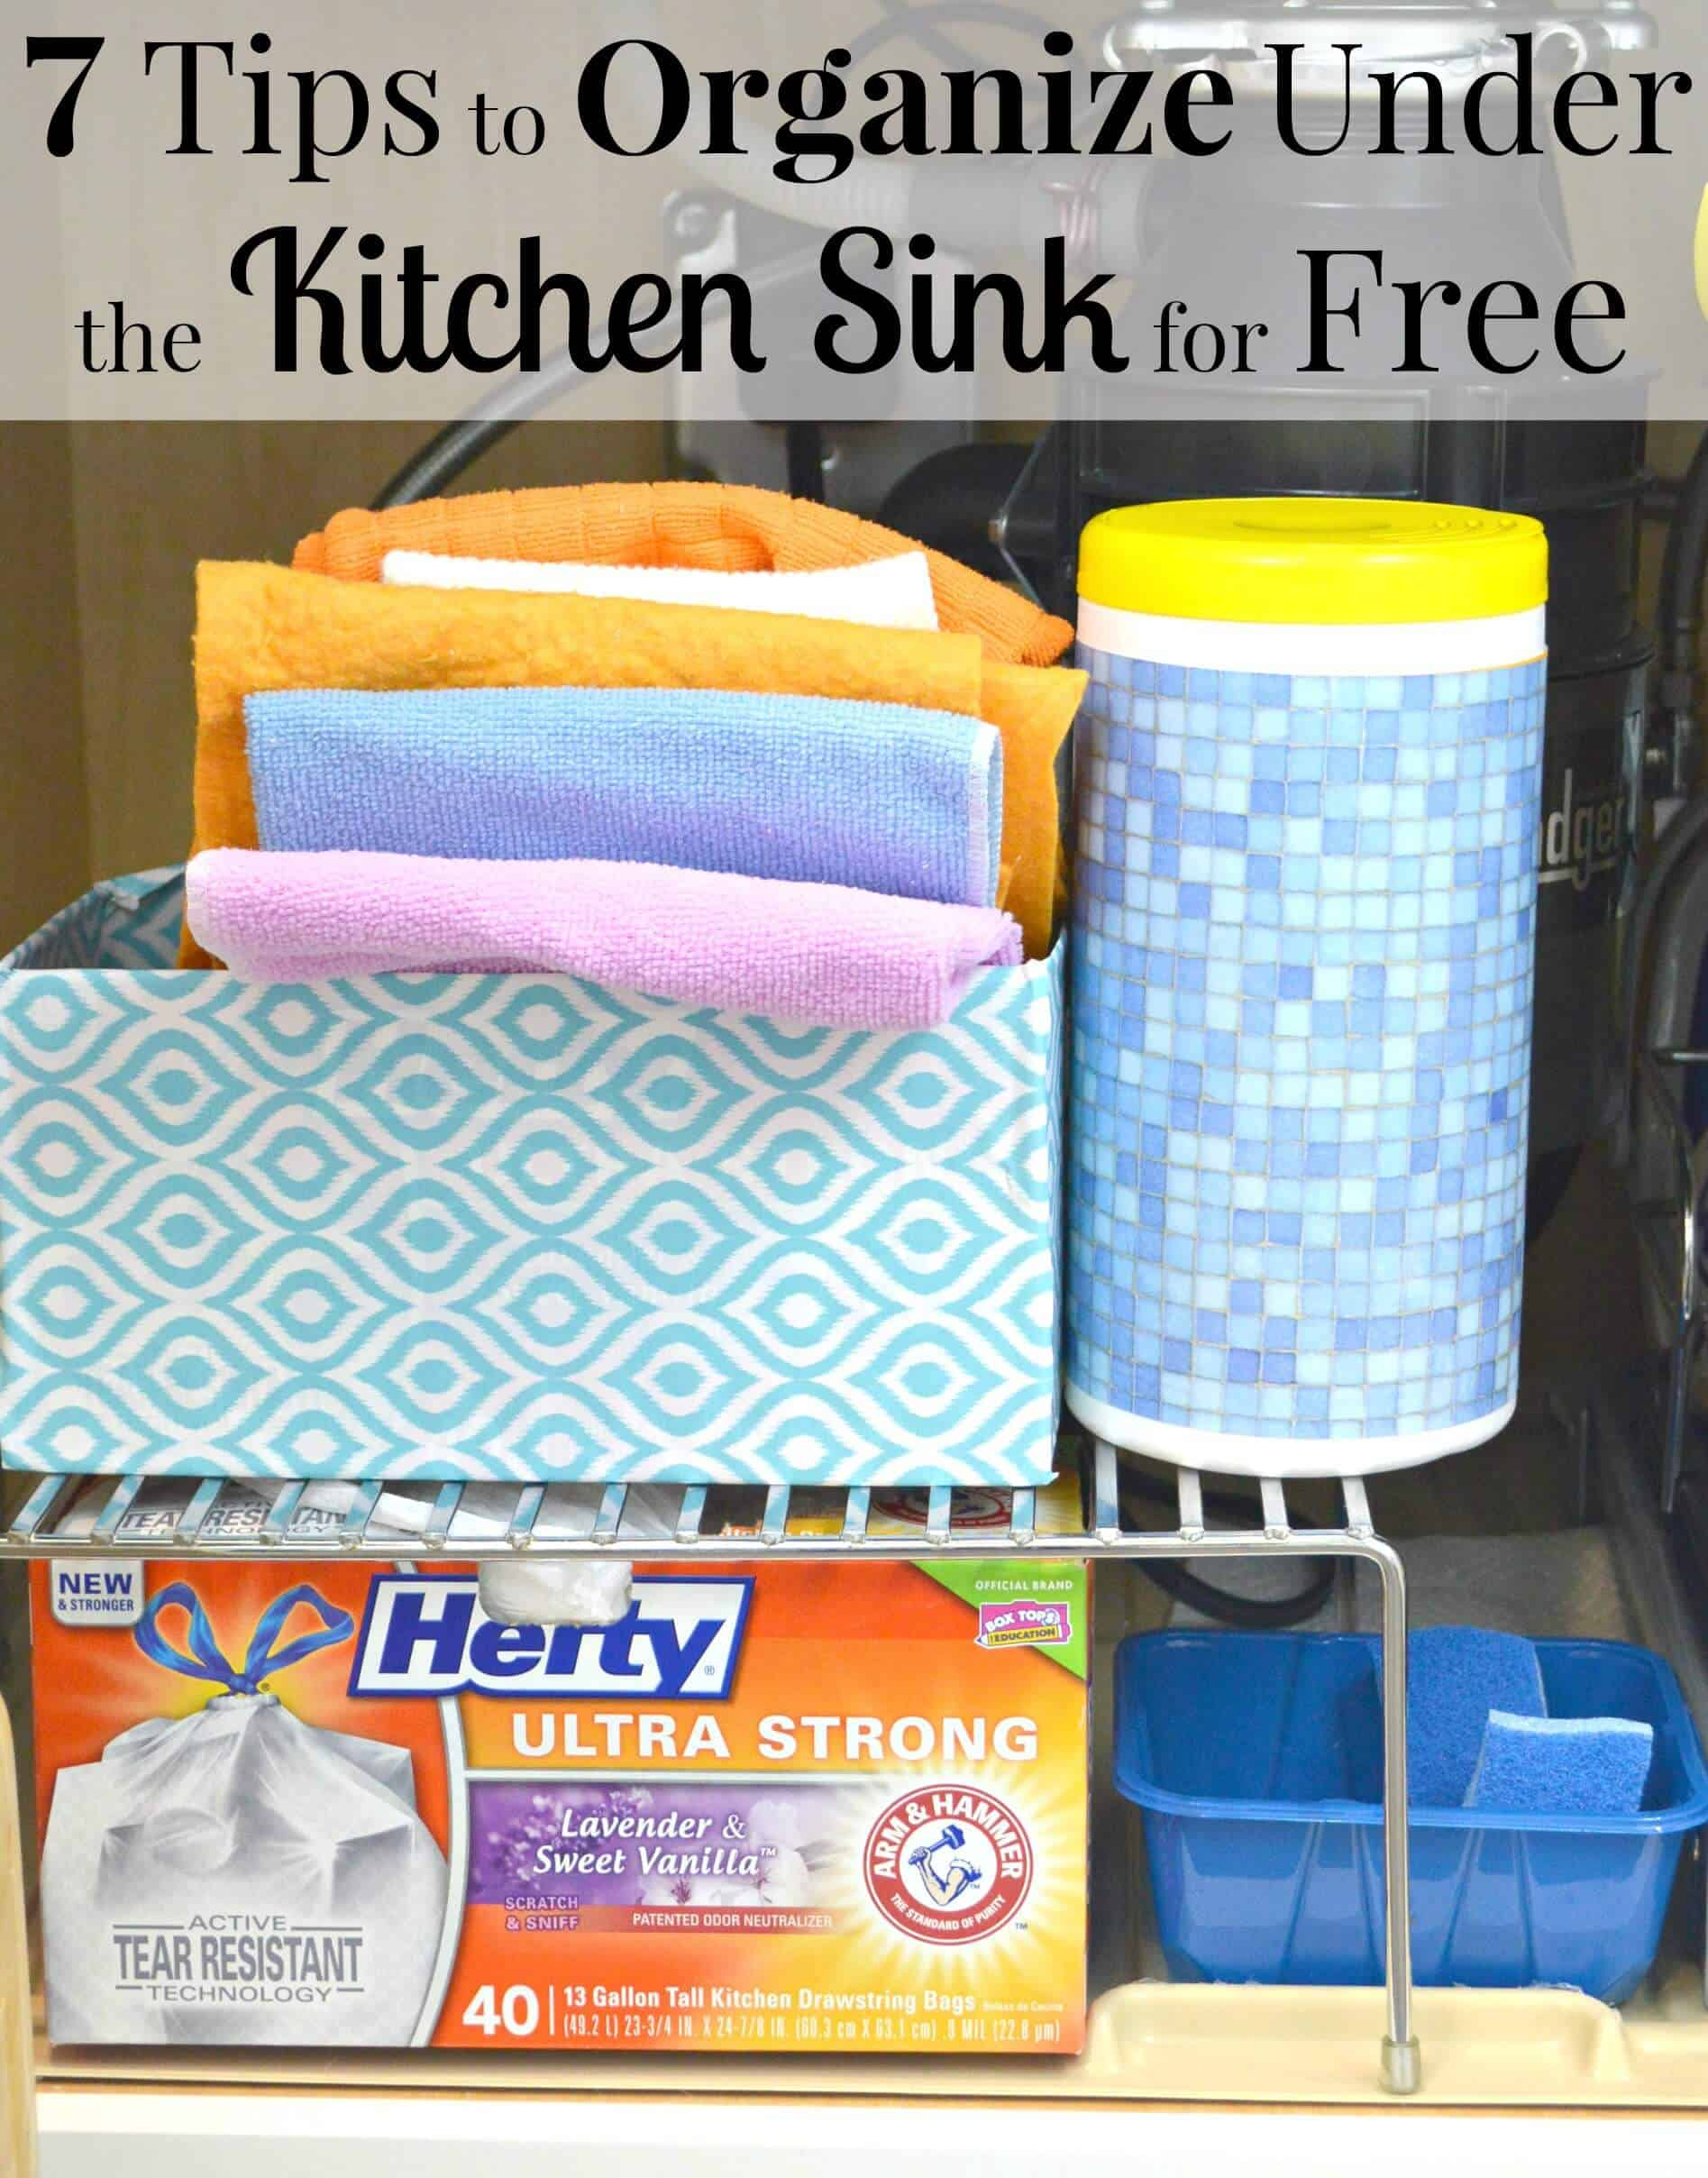 7 Tips to Organize Under the Kitchen Sink for Free – Organizing can be easy and inexpensive but still make a big impact in your day-to-day kitchen functions. #HeftyUltraStrong #ad | Organized 31